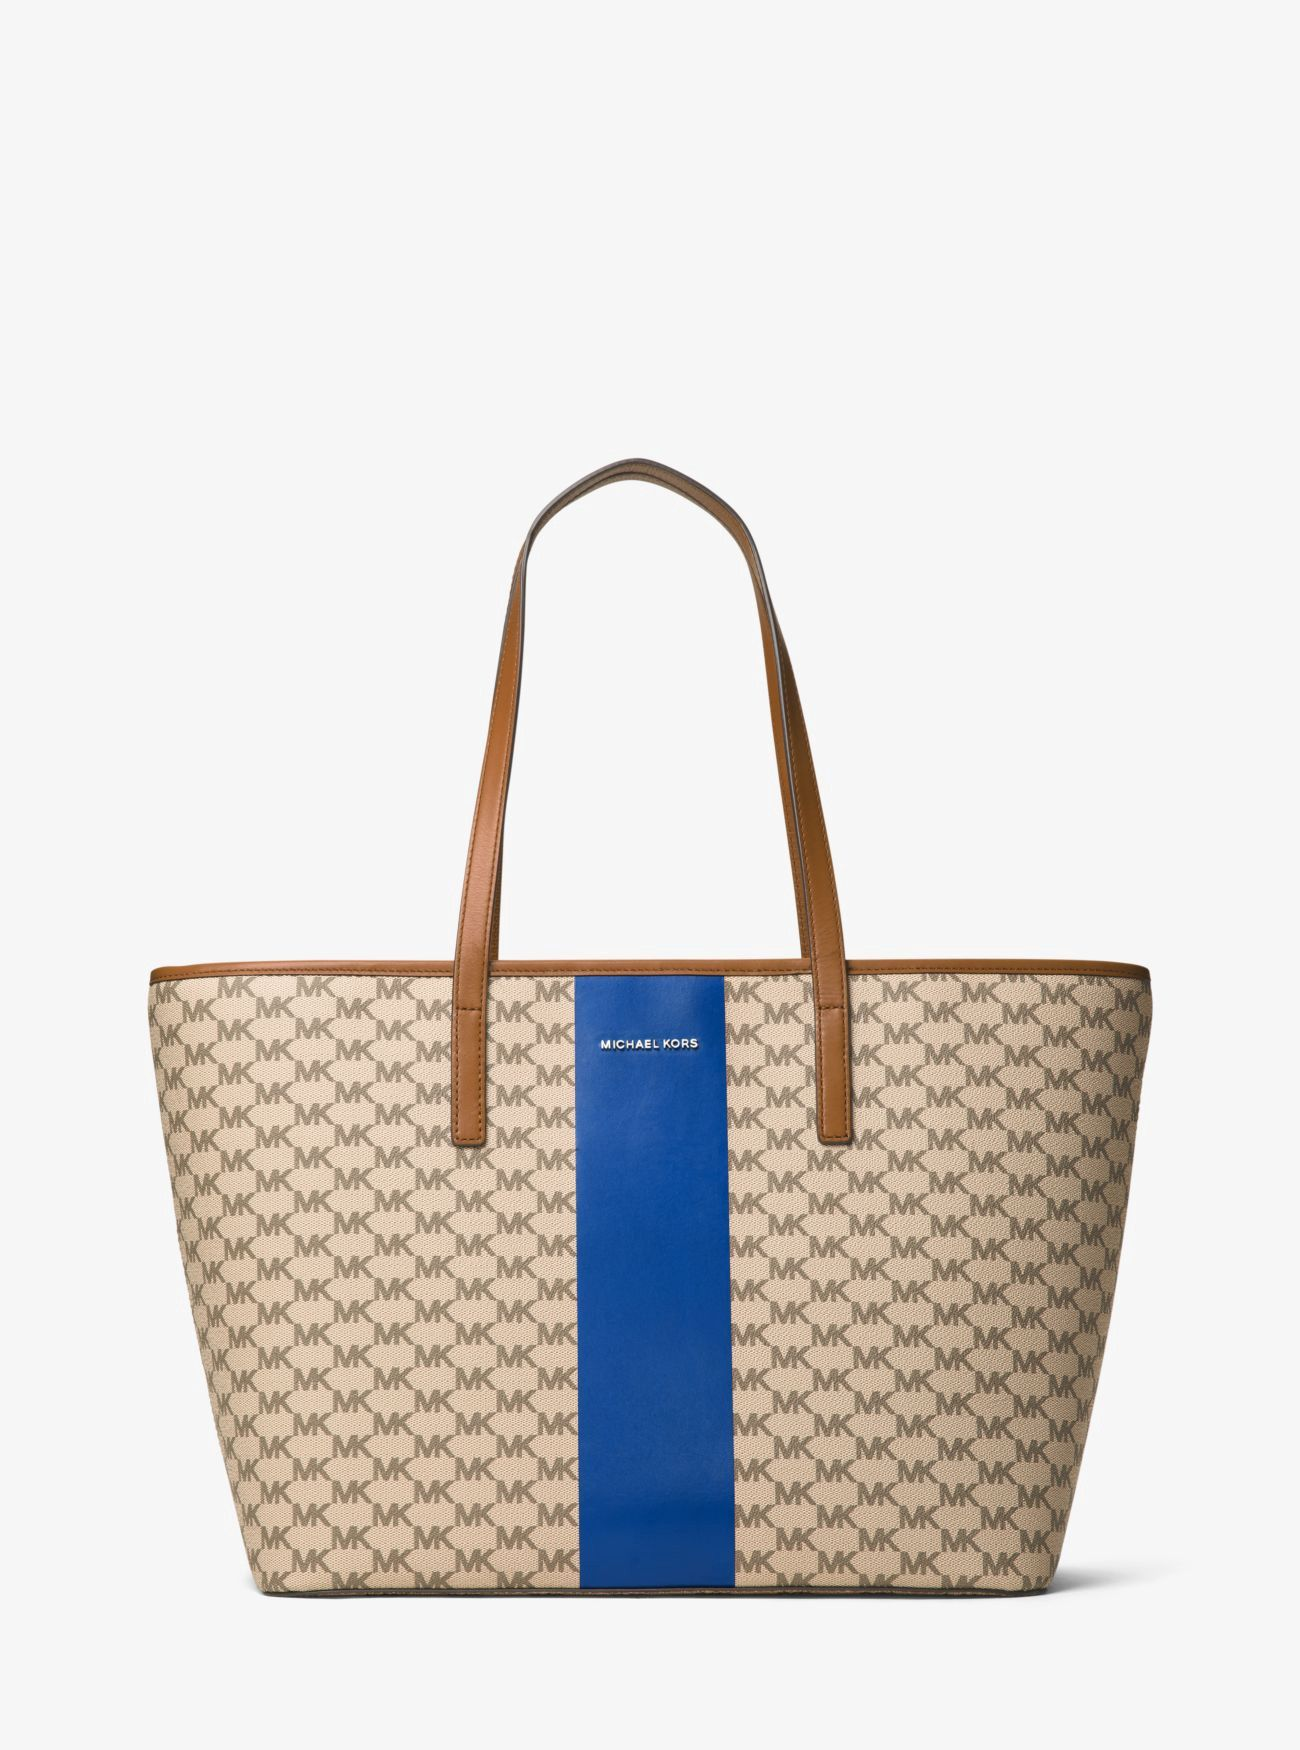 MICHAEL KORS Emry Large Heritage Signature Tote.  michaelkors  bags  hand  bags  canvas  polyester  tote  lining   ceaa5c1d253